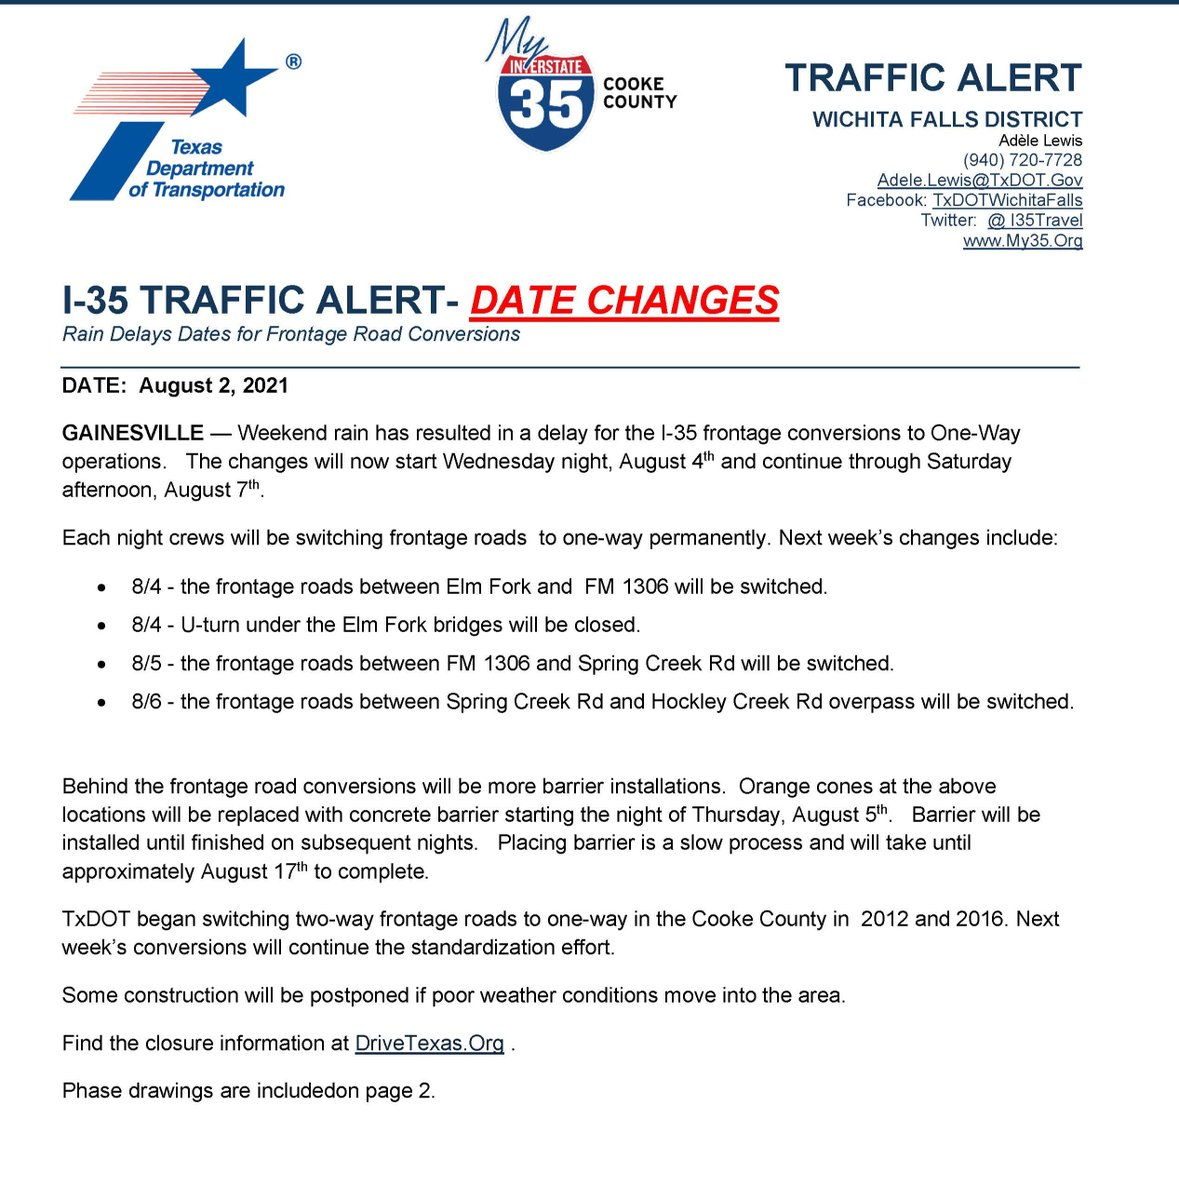 Image posted in Tweet made by I-35 TxDOT PIOs on August 3, 2021, 7:33 pm UTC